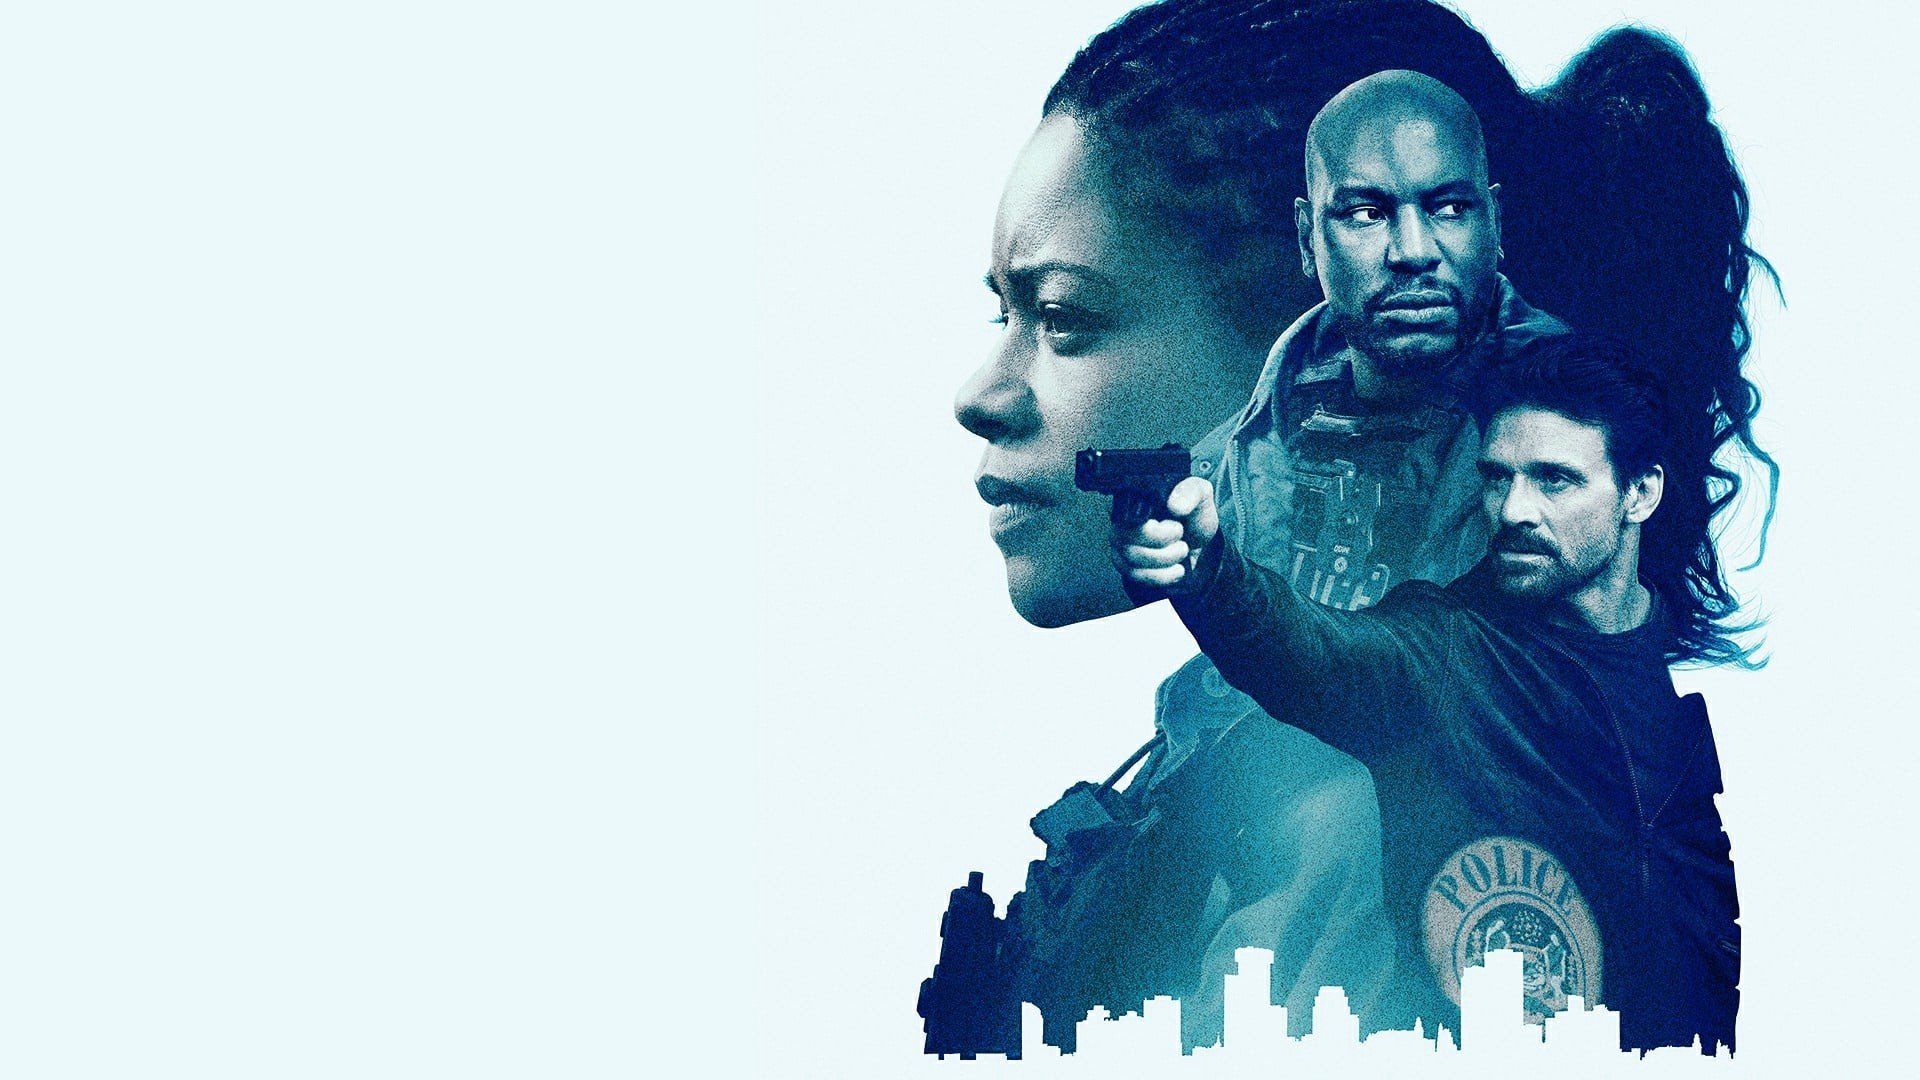 123movies Watch Black And Blue Online Free Hd By Jhon Tilda Medium